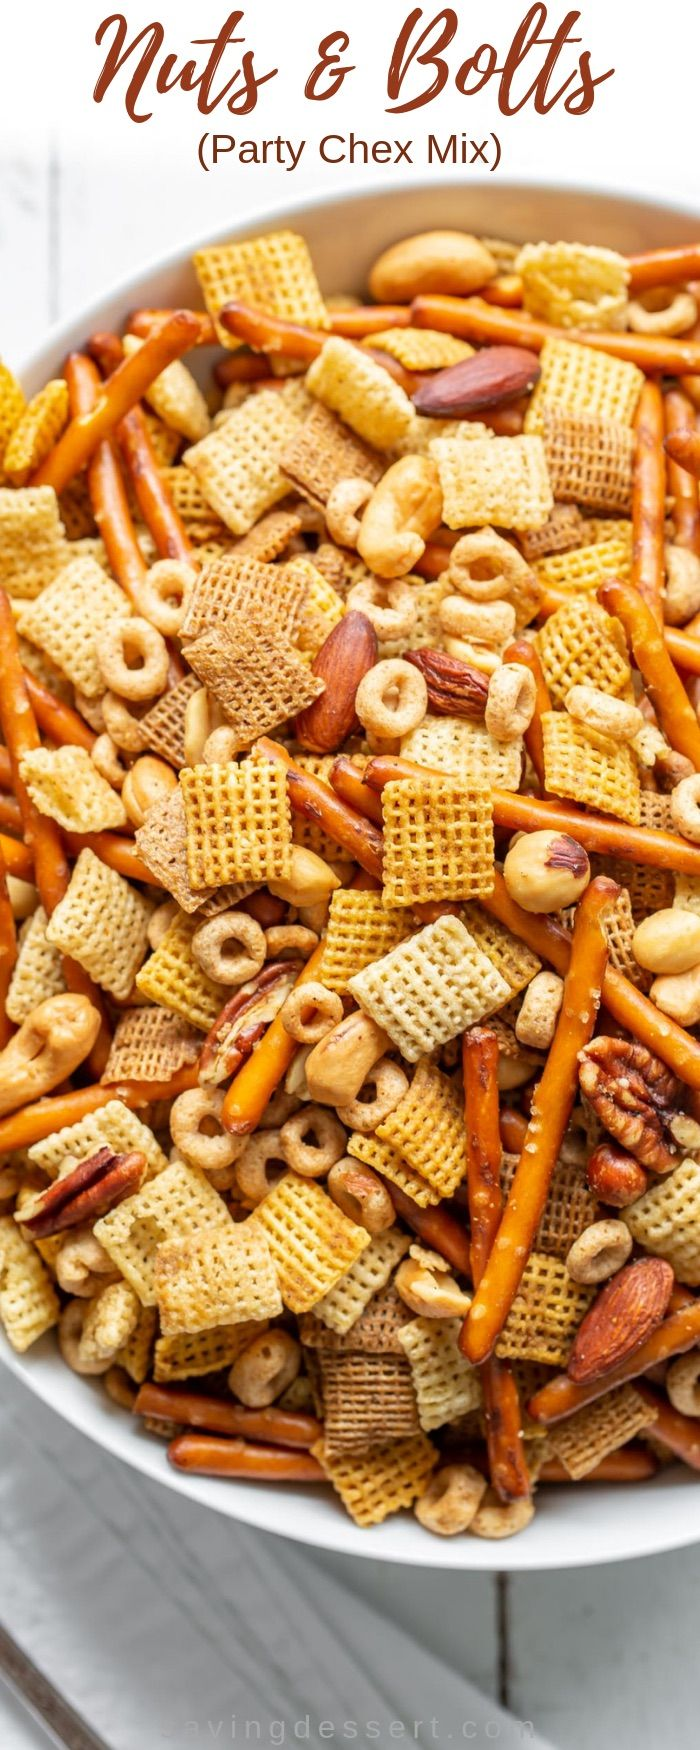 Nuts & Bolts (Party Chex Mix #appetizersforparty